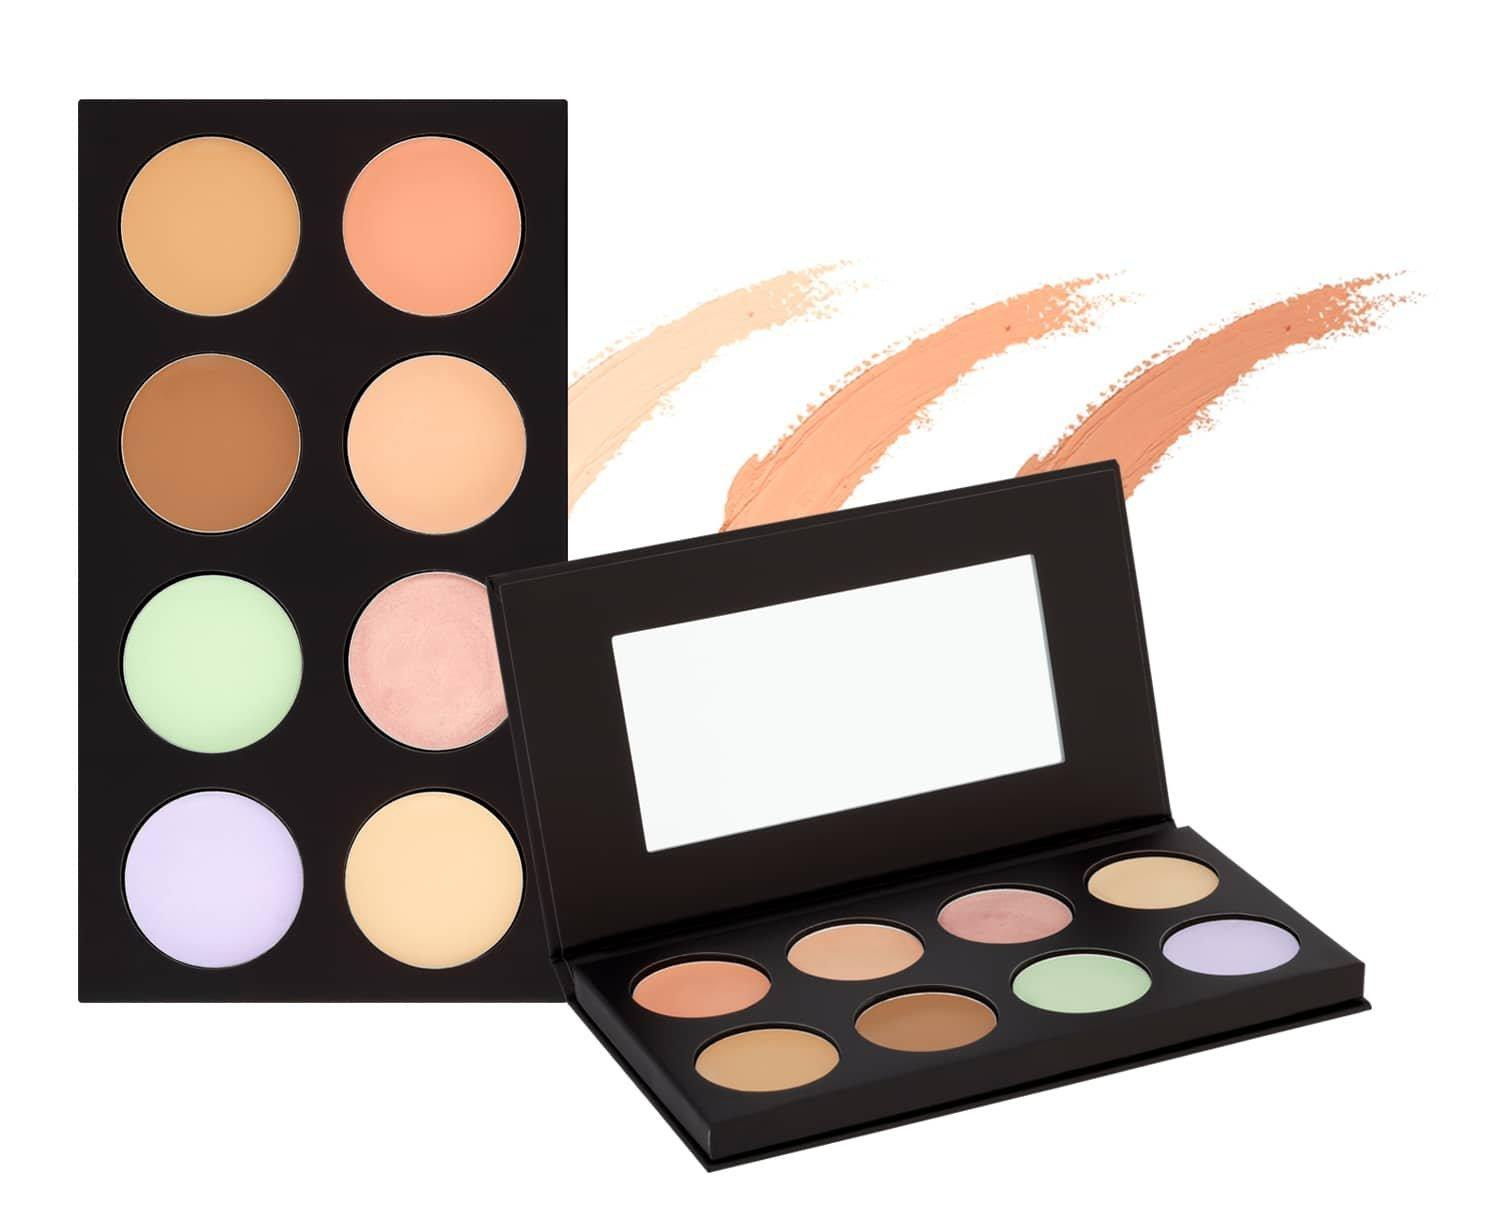 Collection concealer and highlighter palette #ConcealAndLightLikeAPro